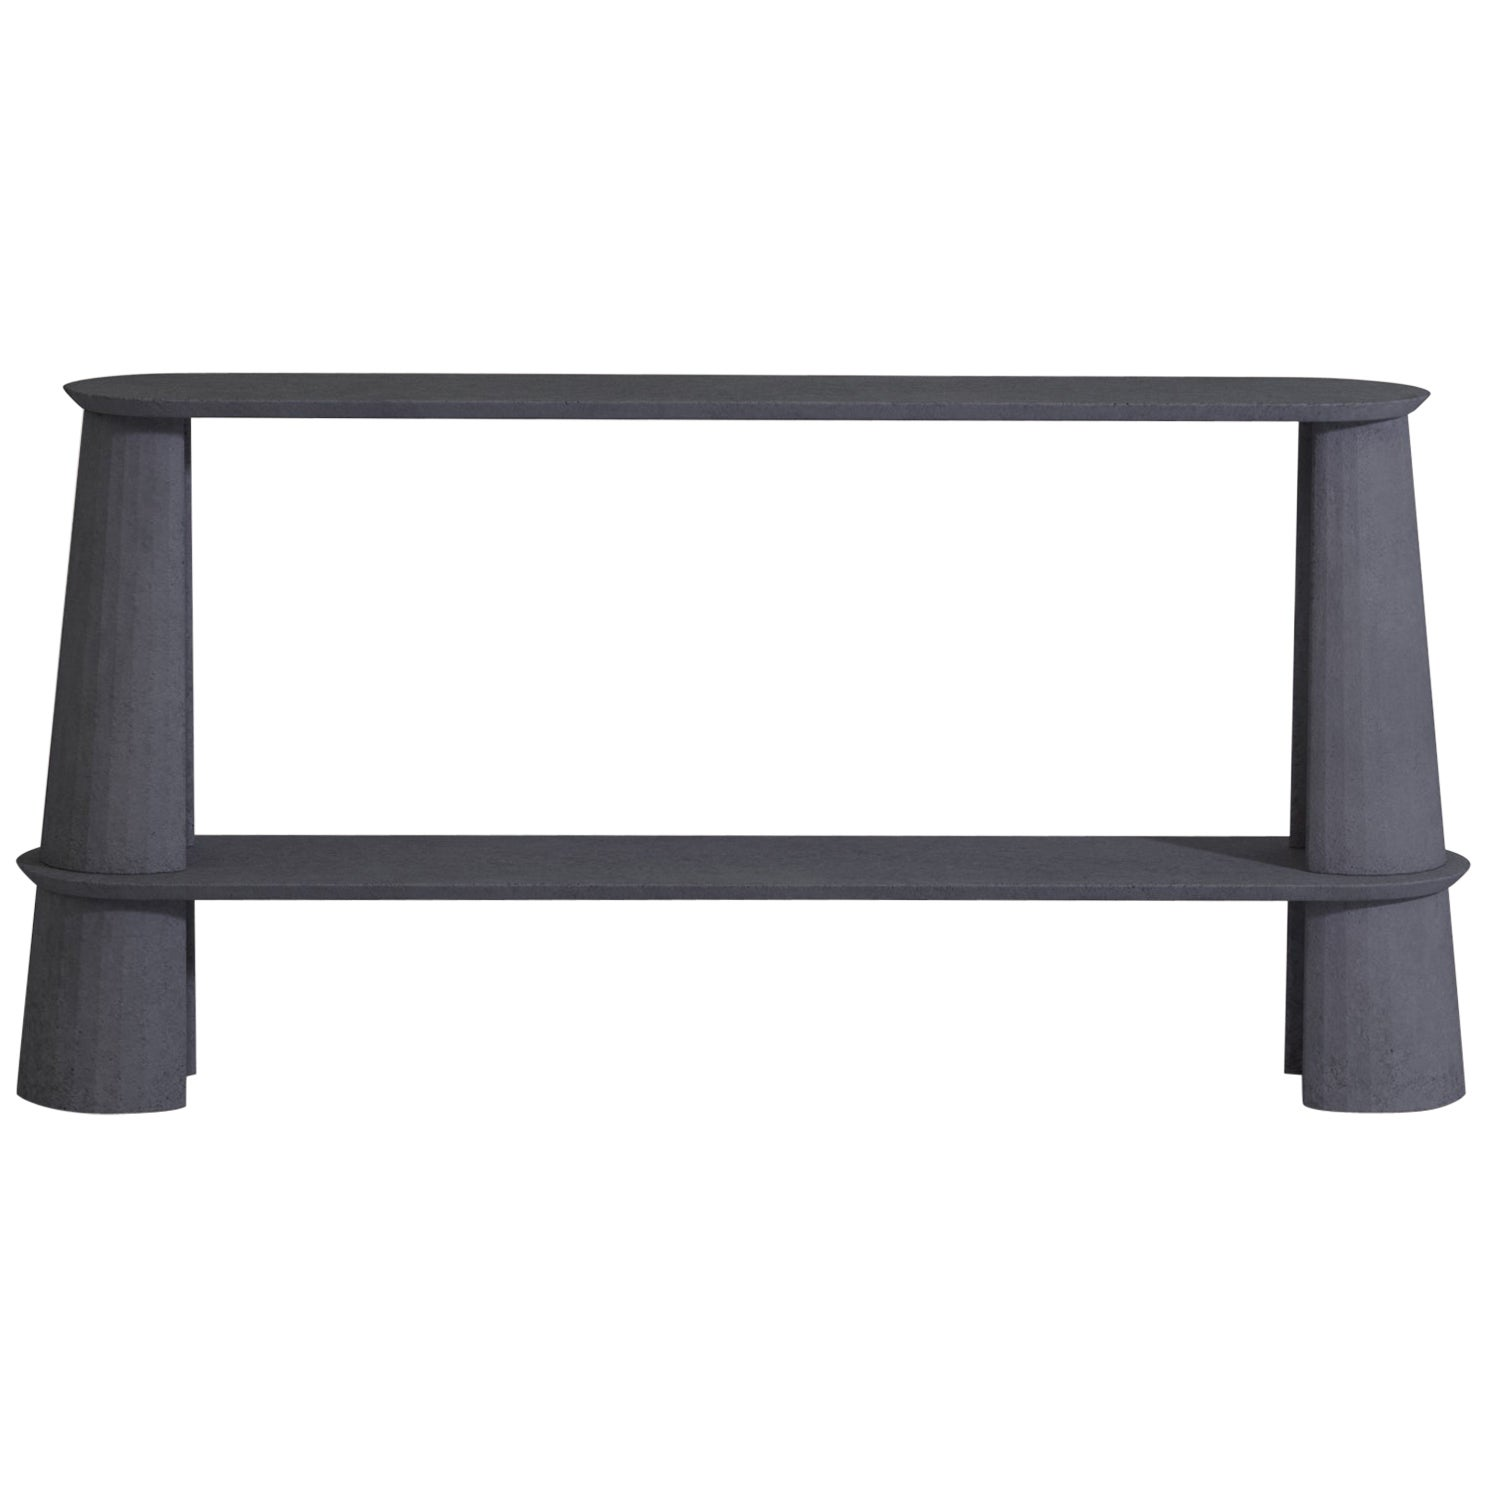 21st Century Studio Irvine Fusto Side Console Table Concrete Cement Ink Grey